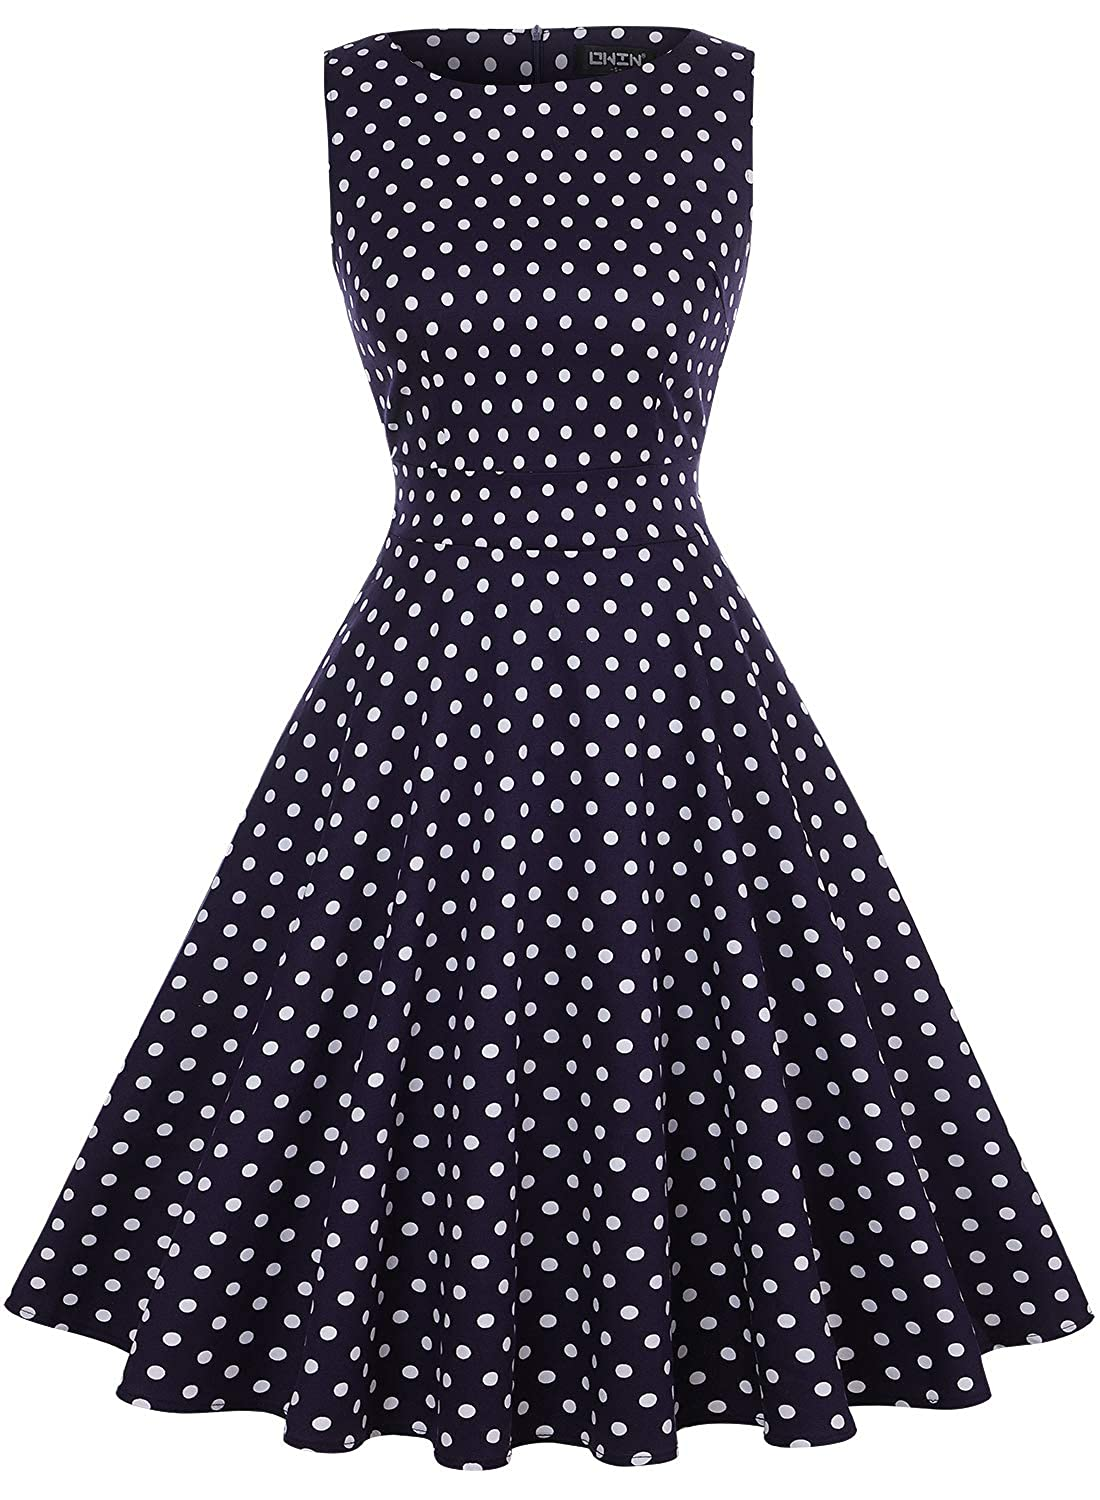 OWIN Womens Vintage 1950s Floral Spring Garden Rockabilly Swing Prom Party Cocktail Dress